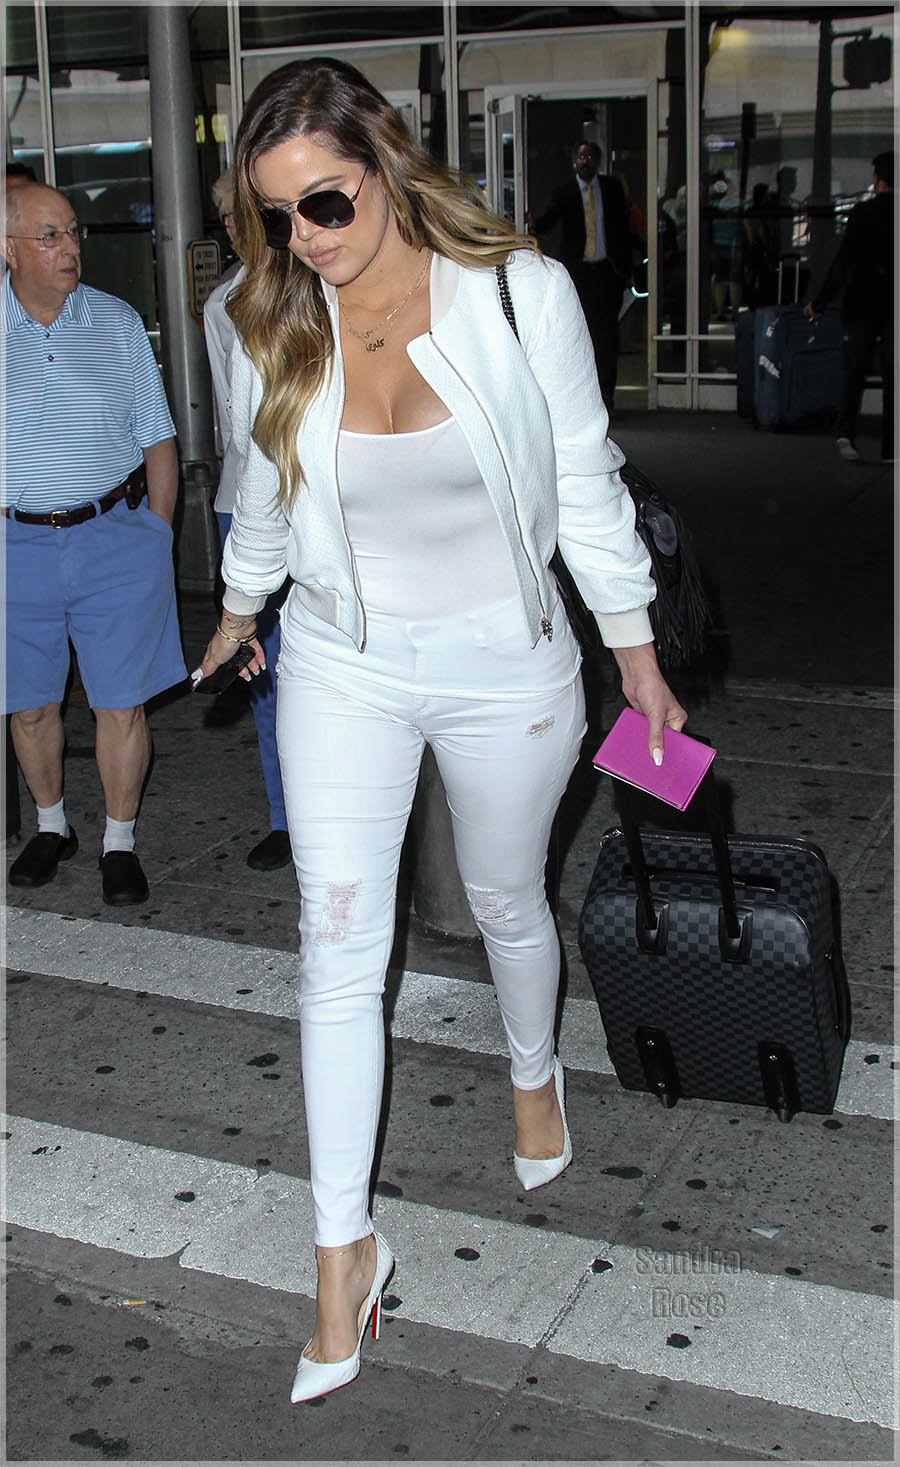 Khloe Kardashian arrives at John F. Kennedy International Airport (JFK) following sister Kim's wedding